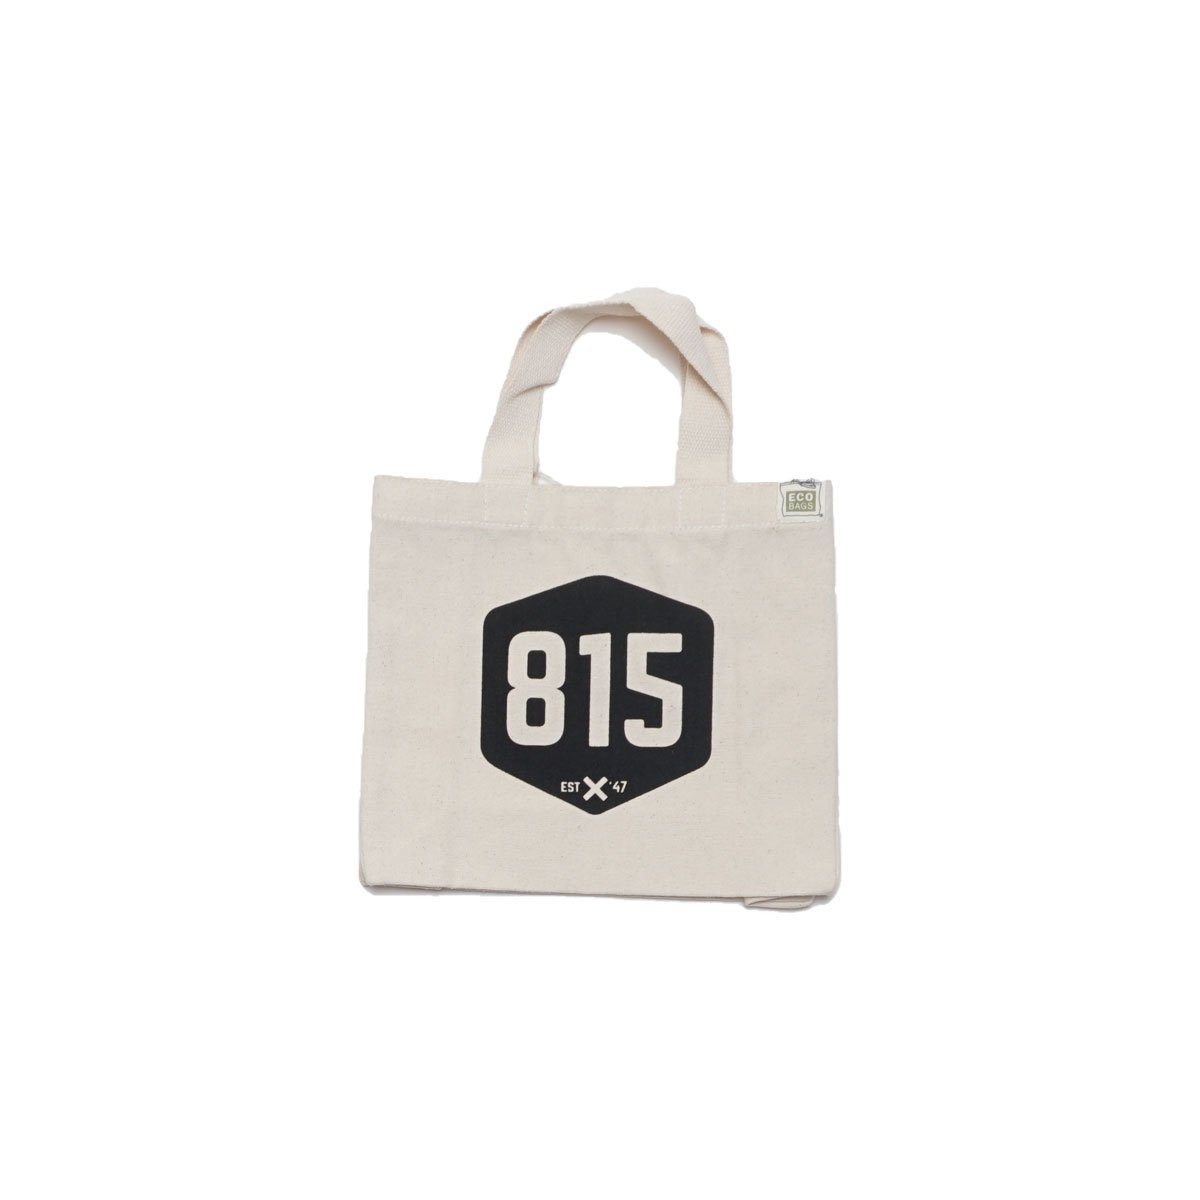 Tote Bag Tote Ecobags 815x : Lunch